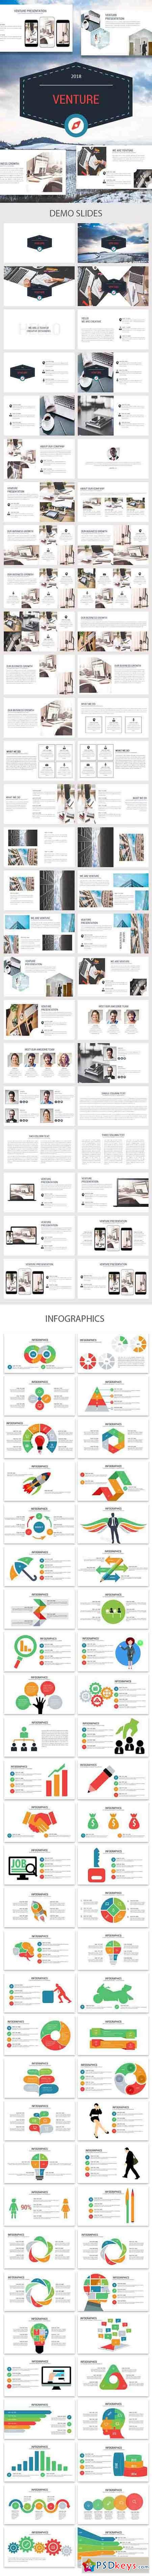 Venture - Multipurpose Powerpoint Presentation 22032337